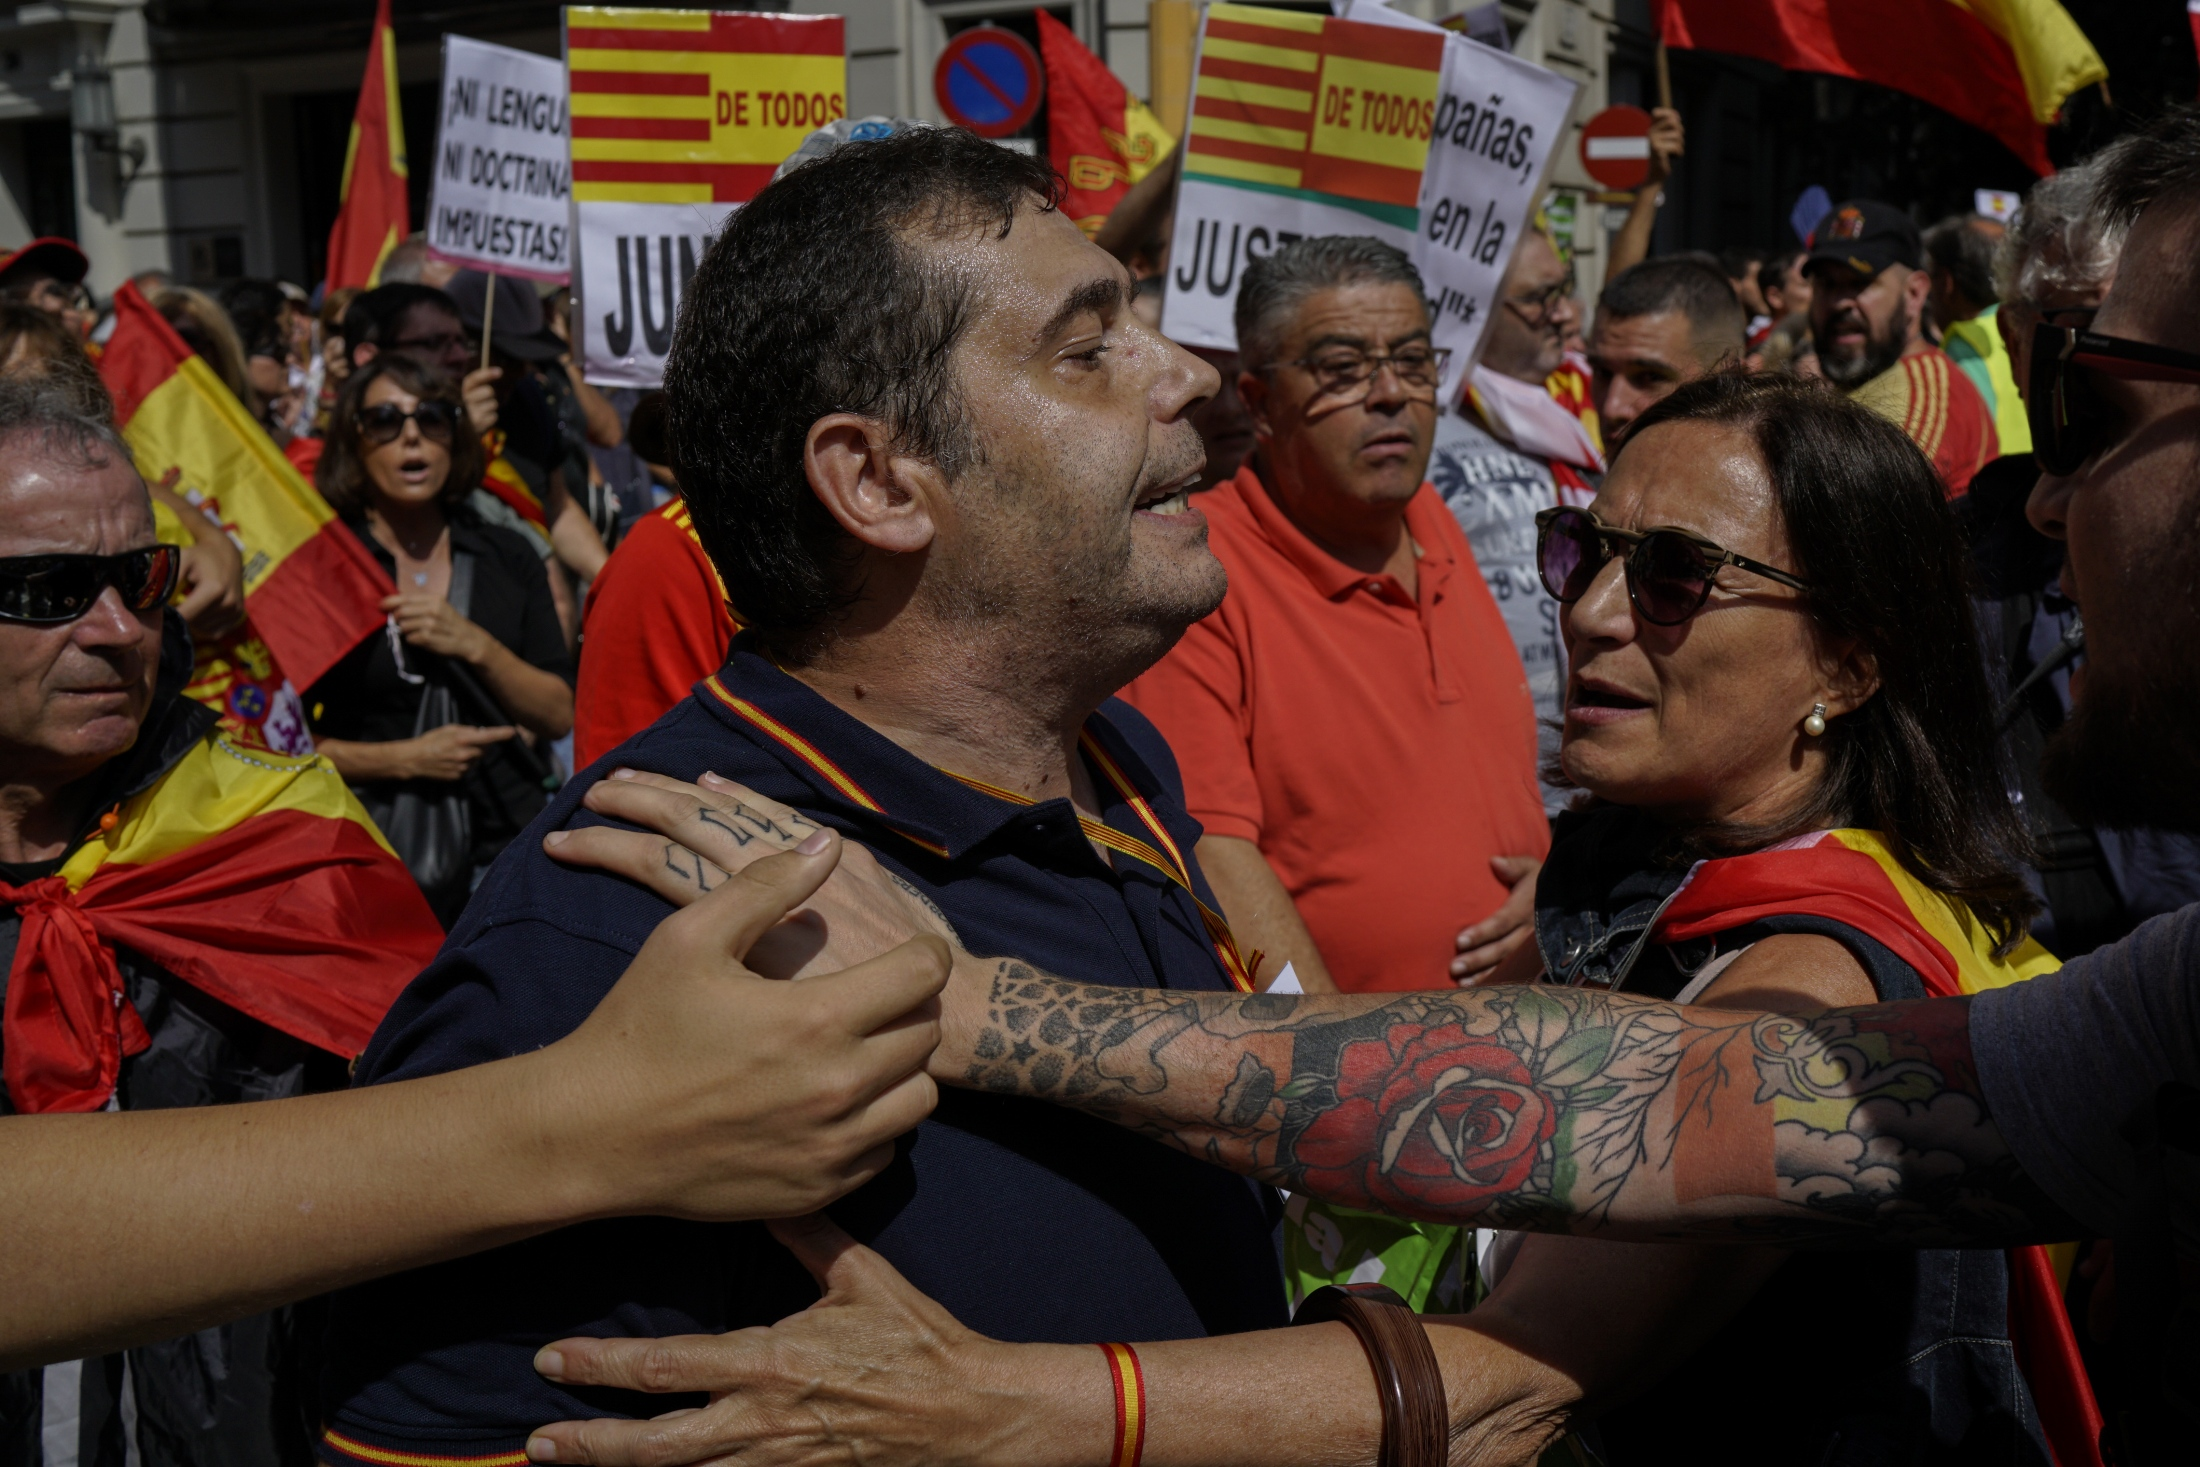 (AP Photo/Daniel Cole) A demonstrator supporting Spanish unity shouts slogans towards Catalonian separatists during a demonstration in Barcelona, Spain, Sunday, Sept. 16, 2018. Police in Barcelona had to intervene on Sunday to keep apart a group of Catalan separatists and a march of those who support Spanish unity. Police formed a barrier to keep the opposing groups from reaching one another when the separatists rallied in a downtown square where the march in favor of the increased teaching of Spanish in local schools had planned to finish.